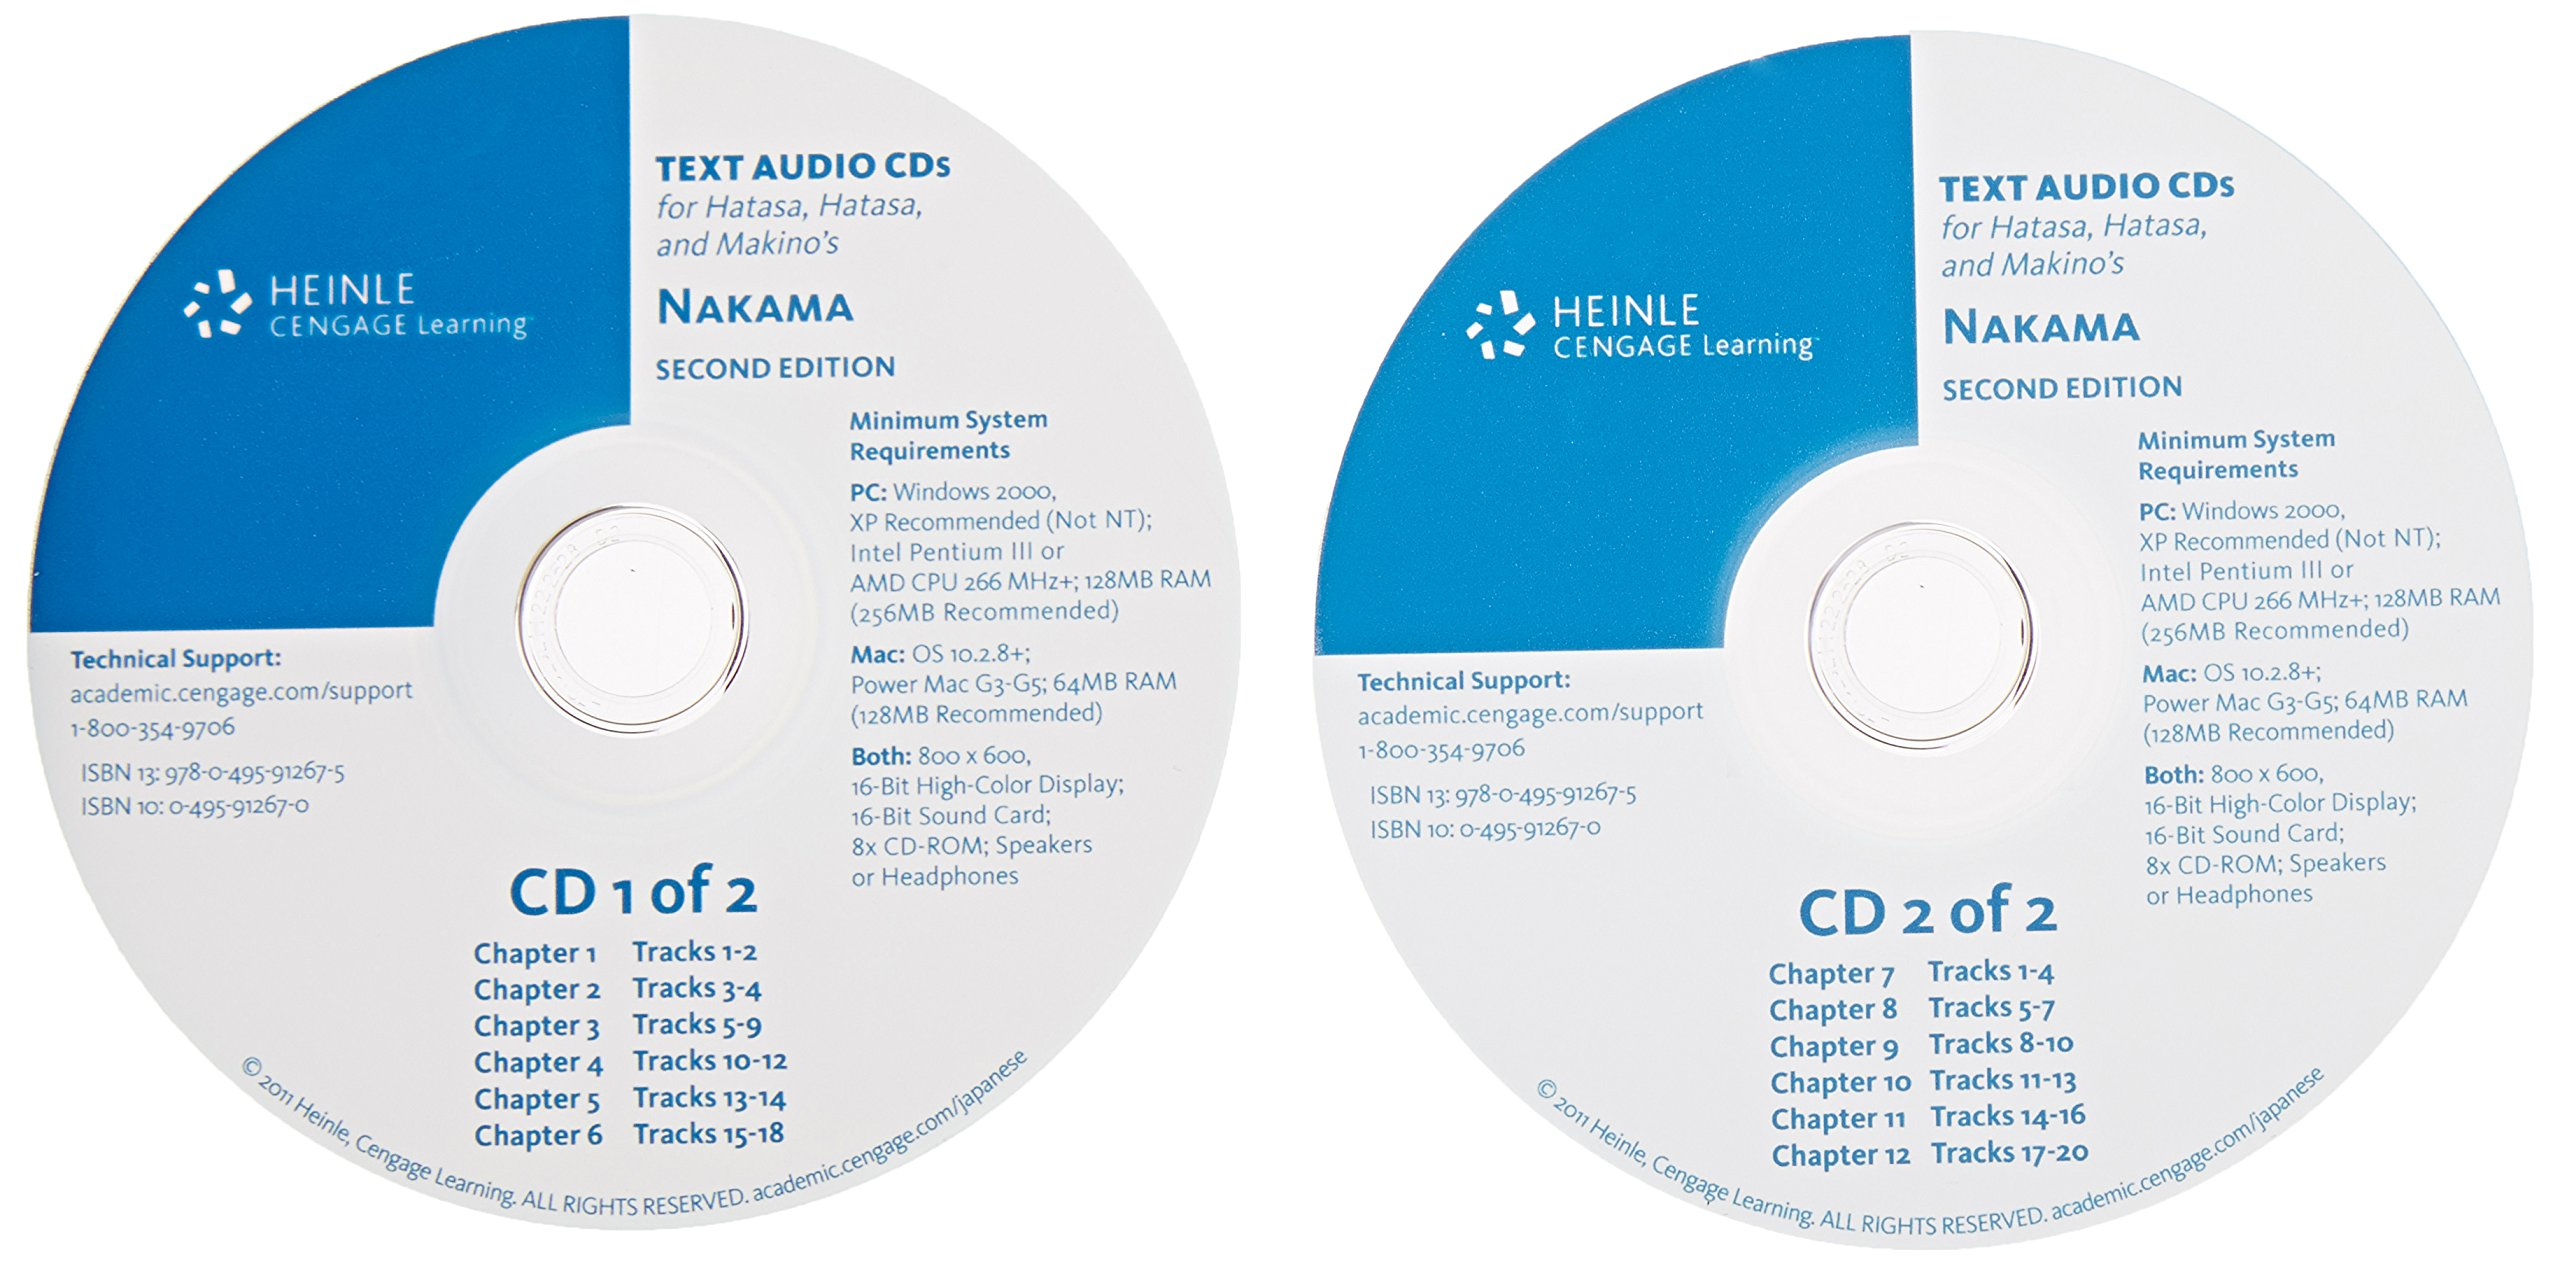 Audio CD-ROM (2) for Hatasa/Hatasa/Makino's Nakama 1